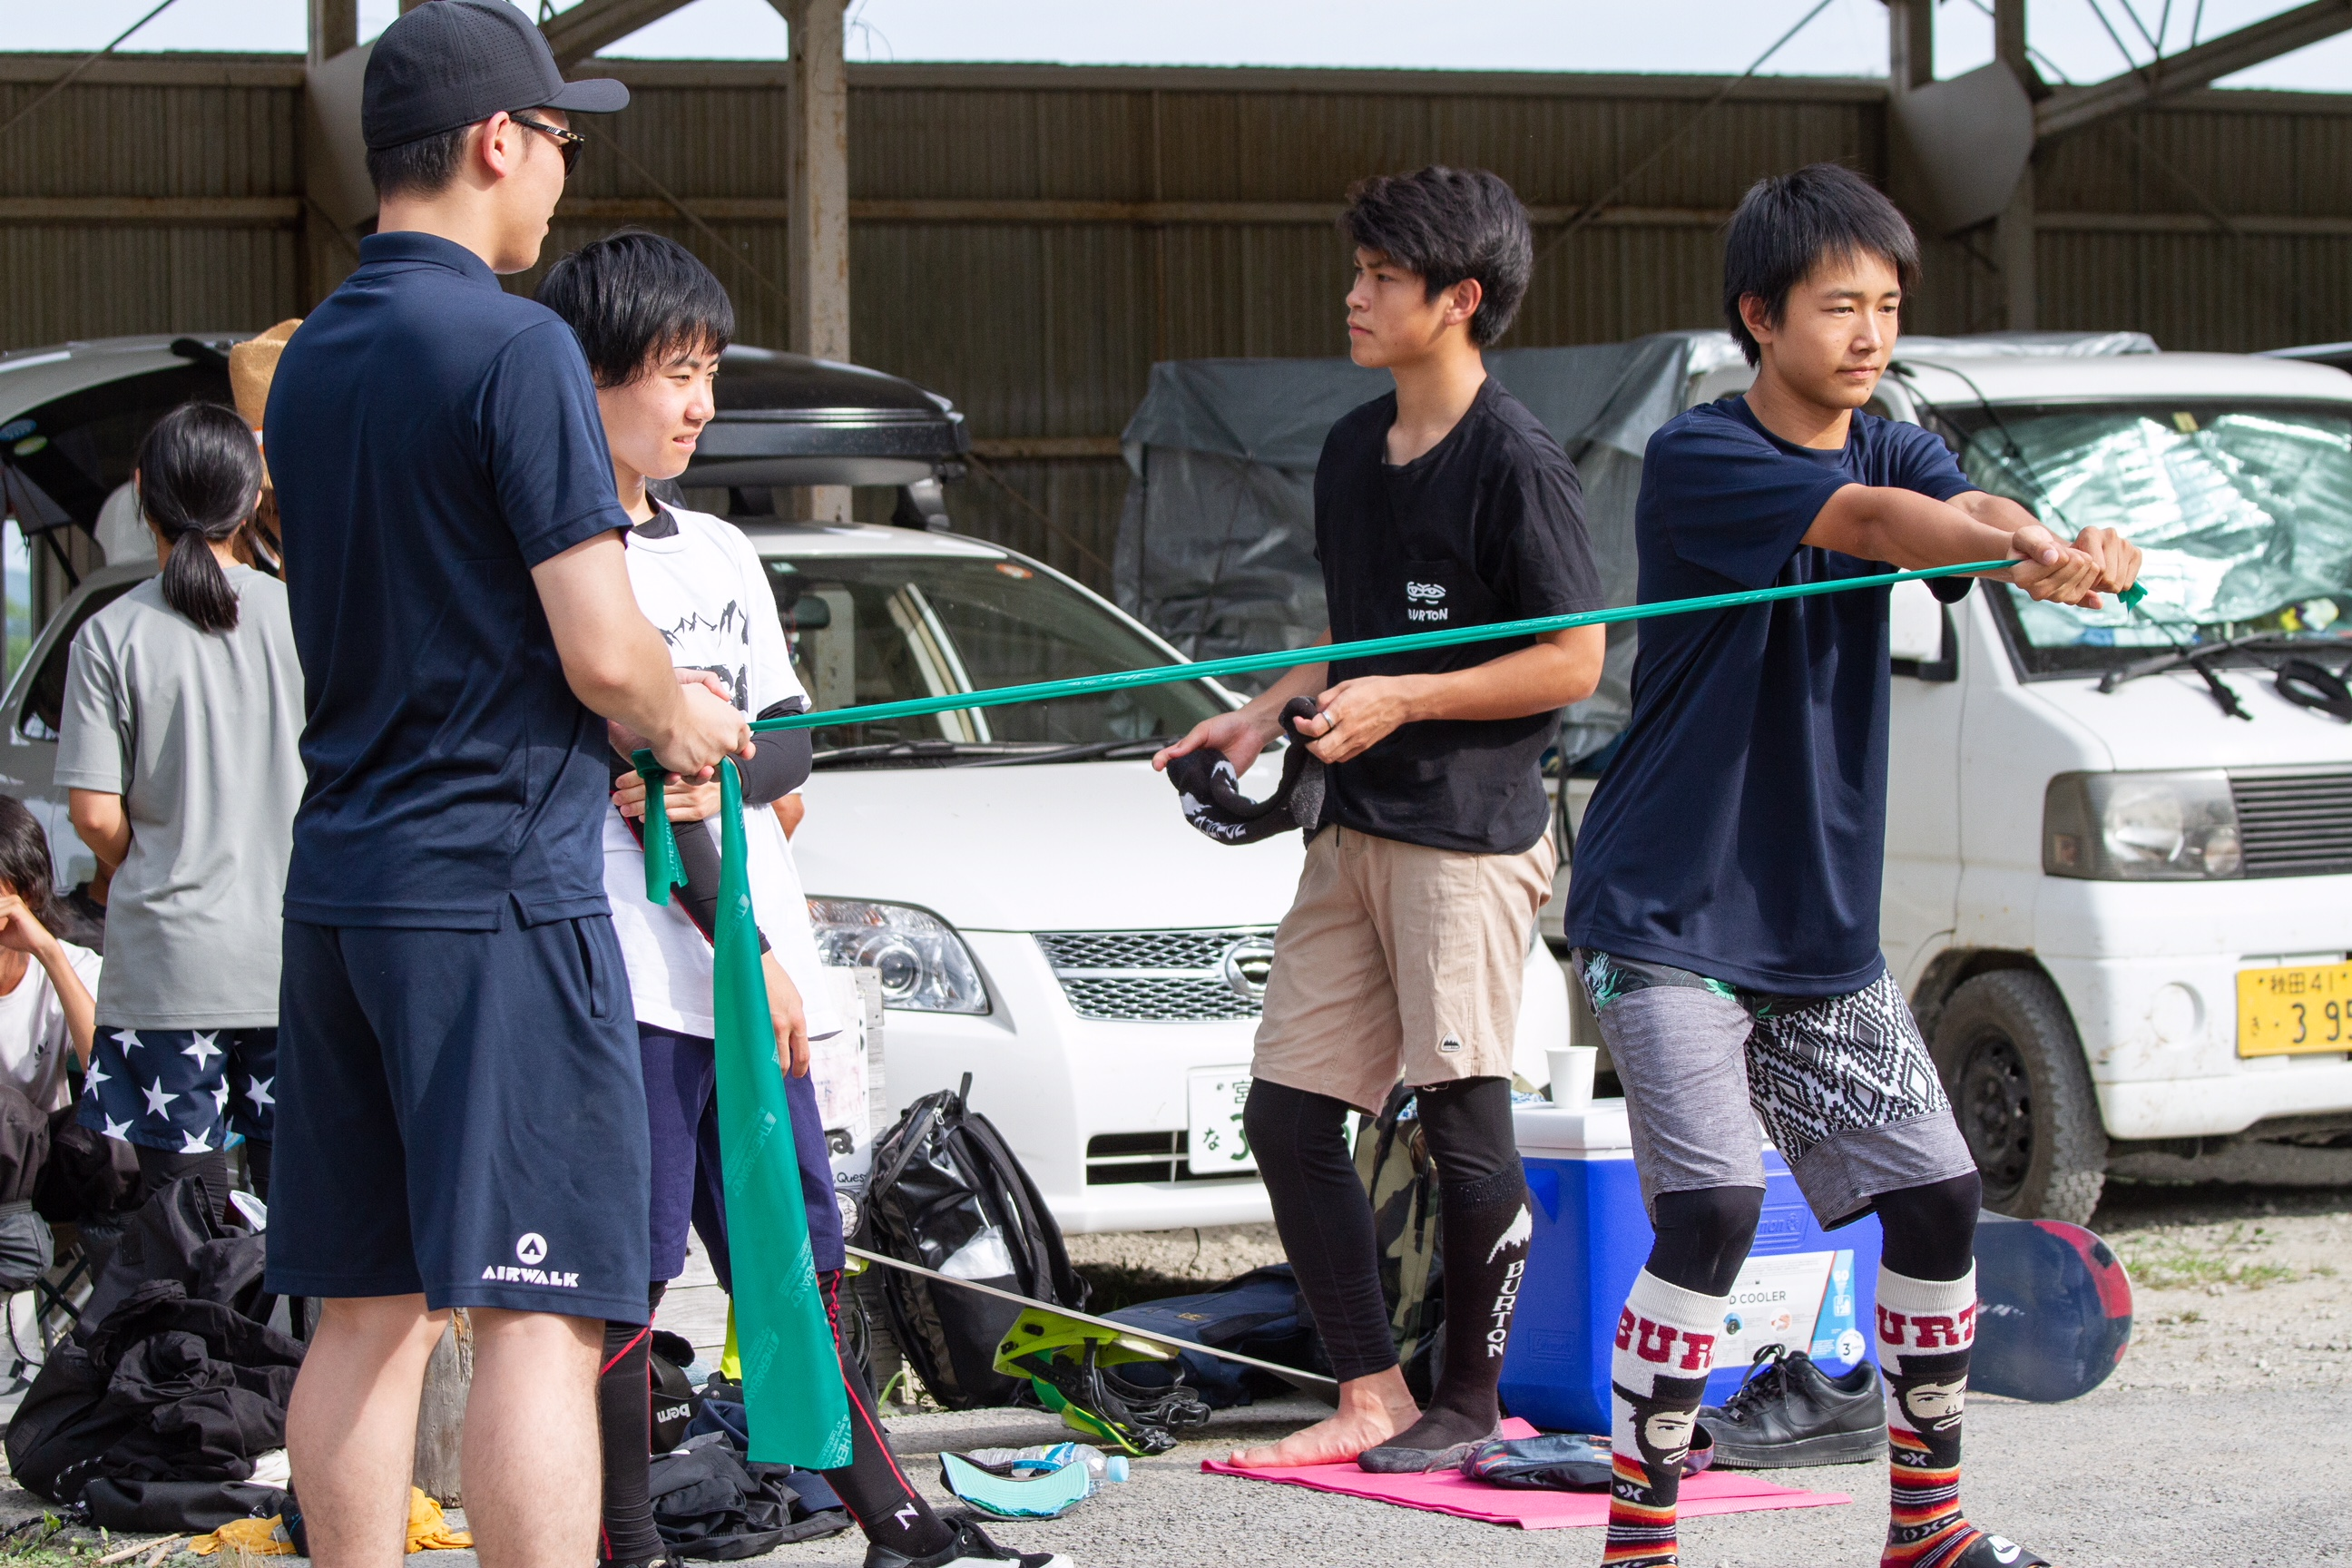 Aoto Kawakami warming up with Kenjiro trainer at national team training summer camp at Tohoku Quest.